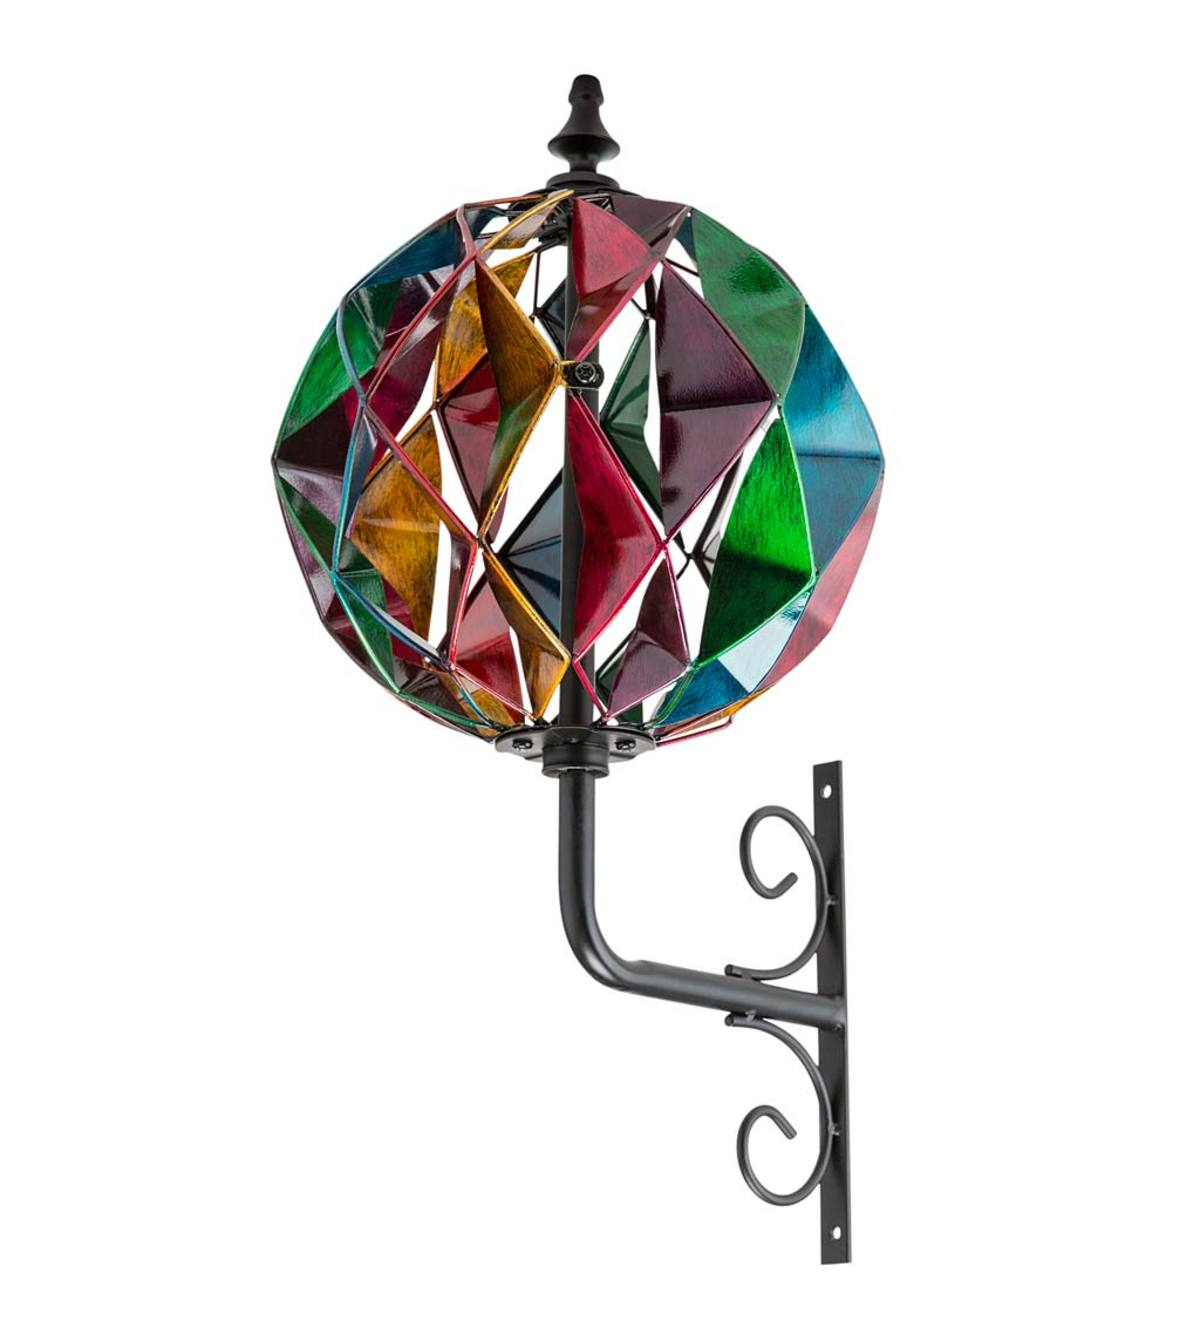 Colorful Harlequin Wall Mount Spinner - Multi